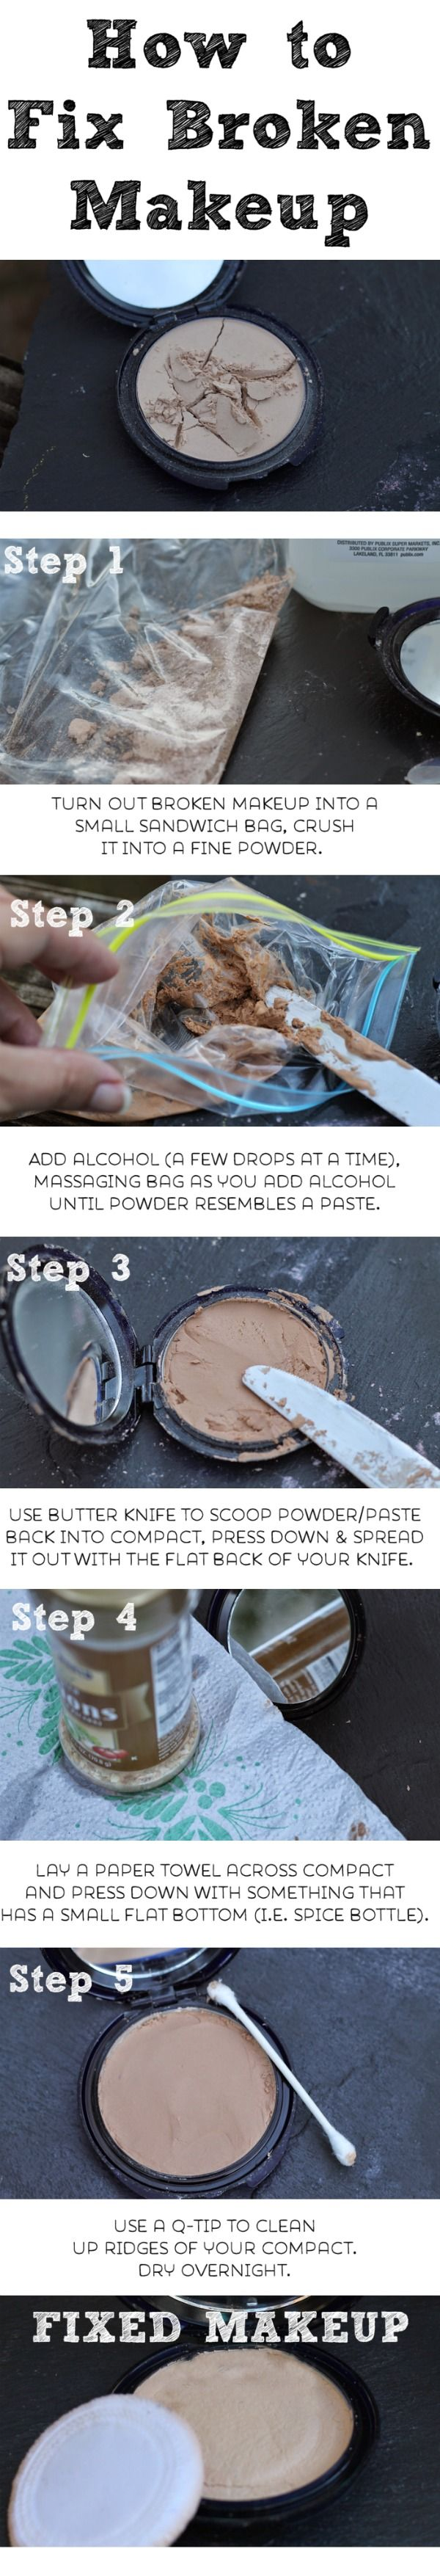 10 Homemade Recipes for Beauty Products: How to Fix Broken Eyeshadow, Blush or Foundation